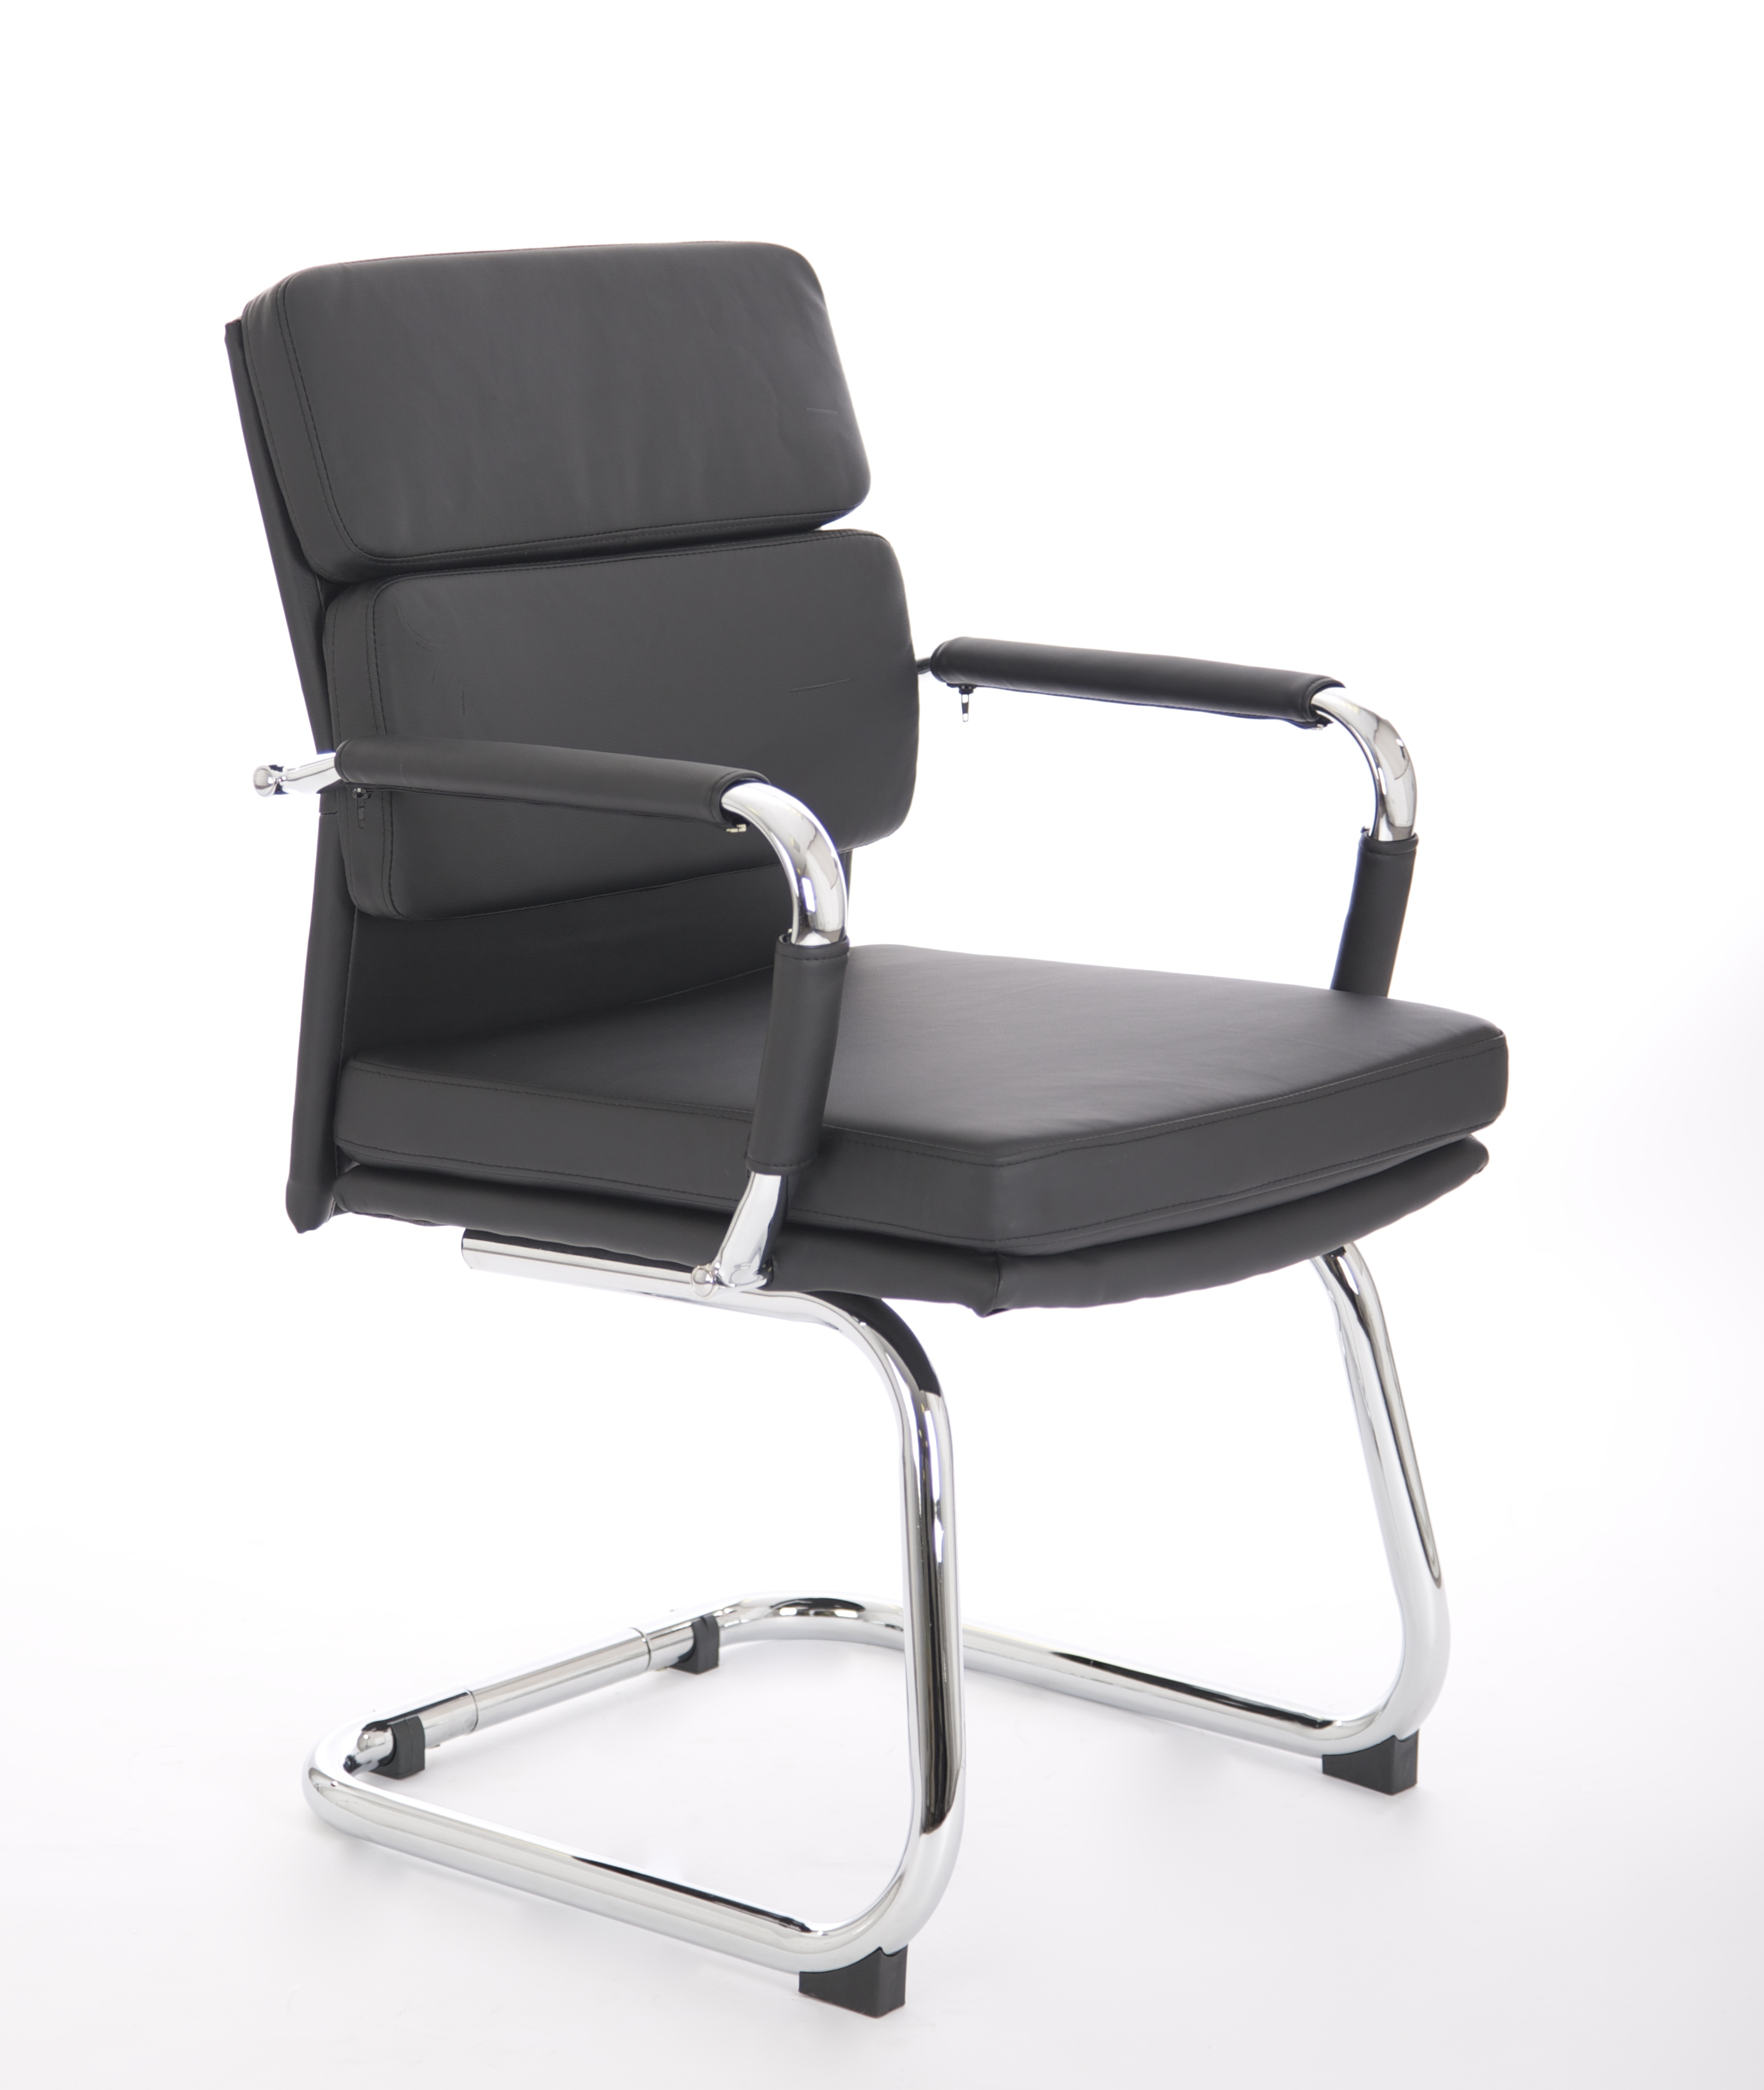 Reception Chairs Advocate Visitor Chair Black Soft Bonded Leather With Arms BR000206